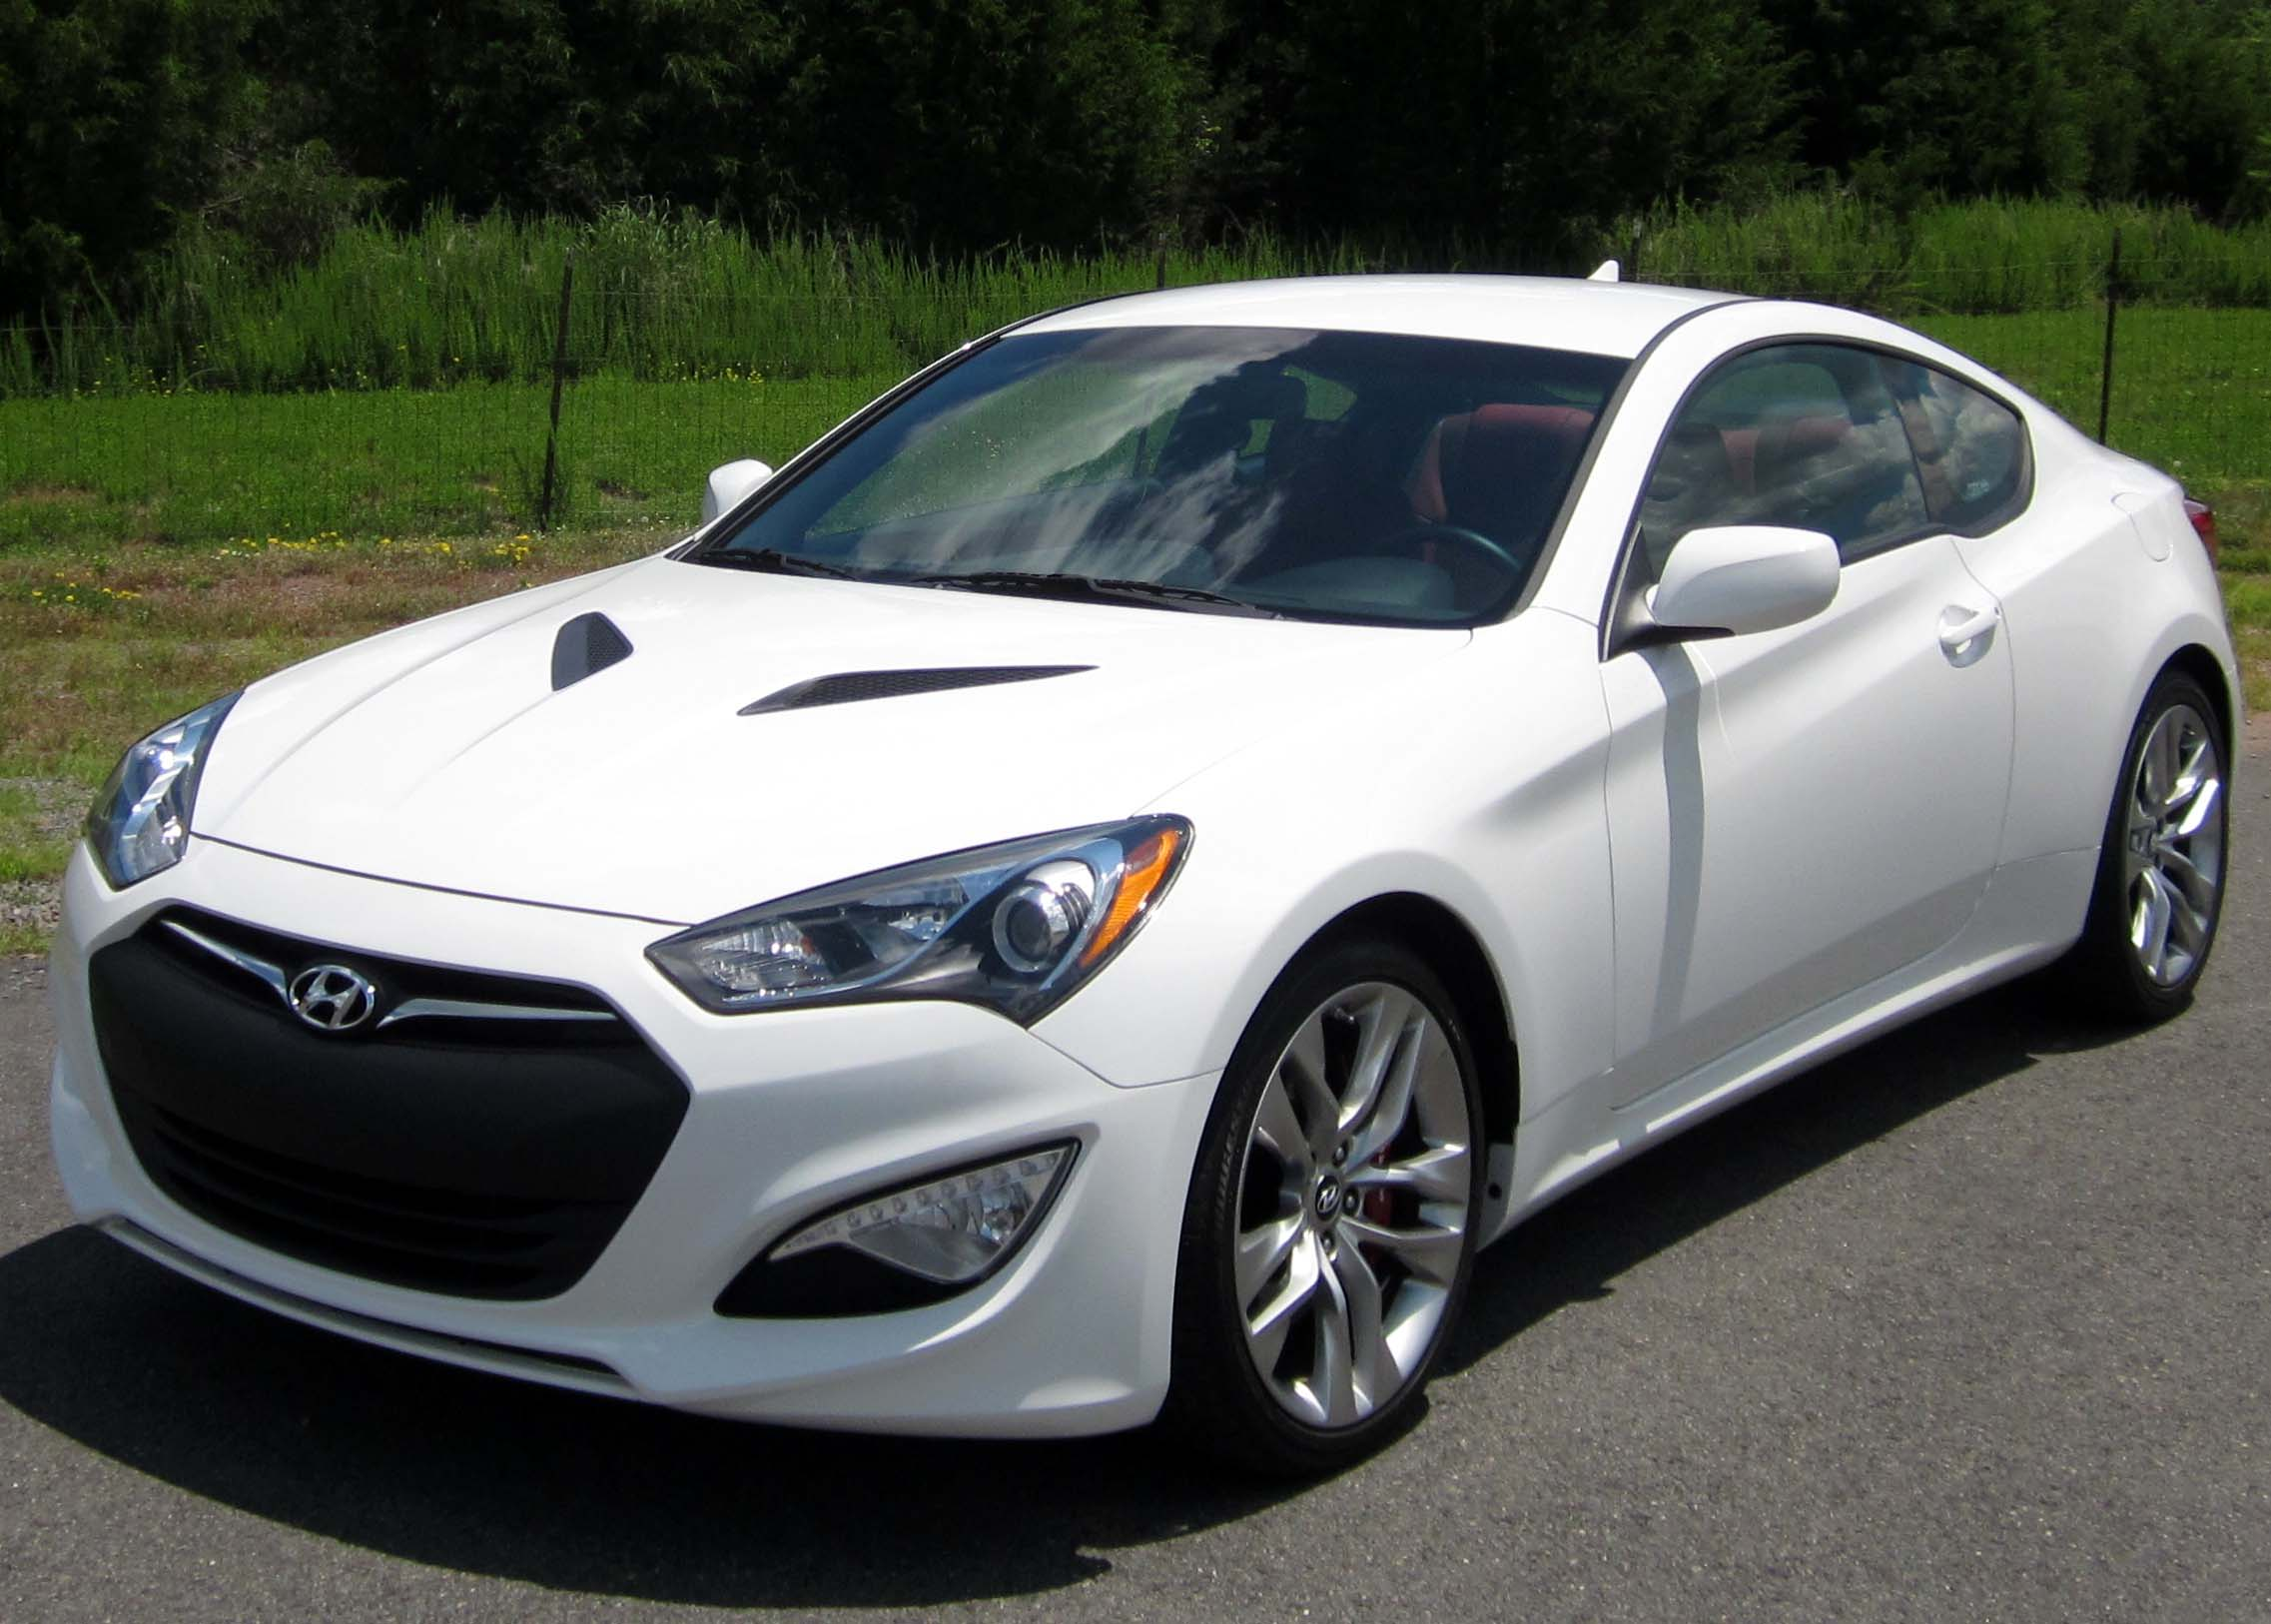 file 2013 hyundai genesis coupe 3 8 r spec 06 15 2012 2 jpg wikipedia. Black Bedroom Furniture Sets. Home Design Ideas